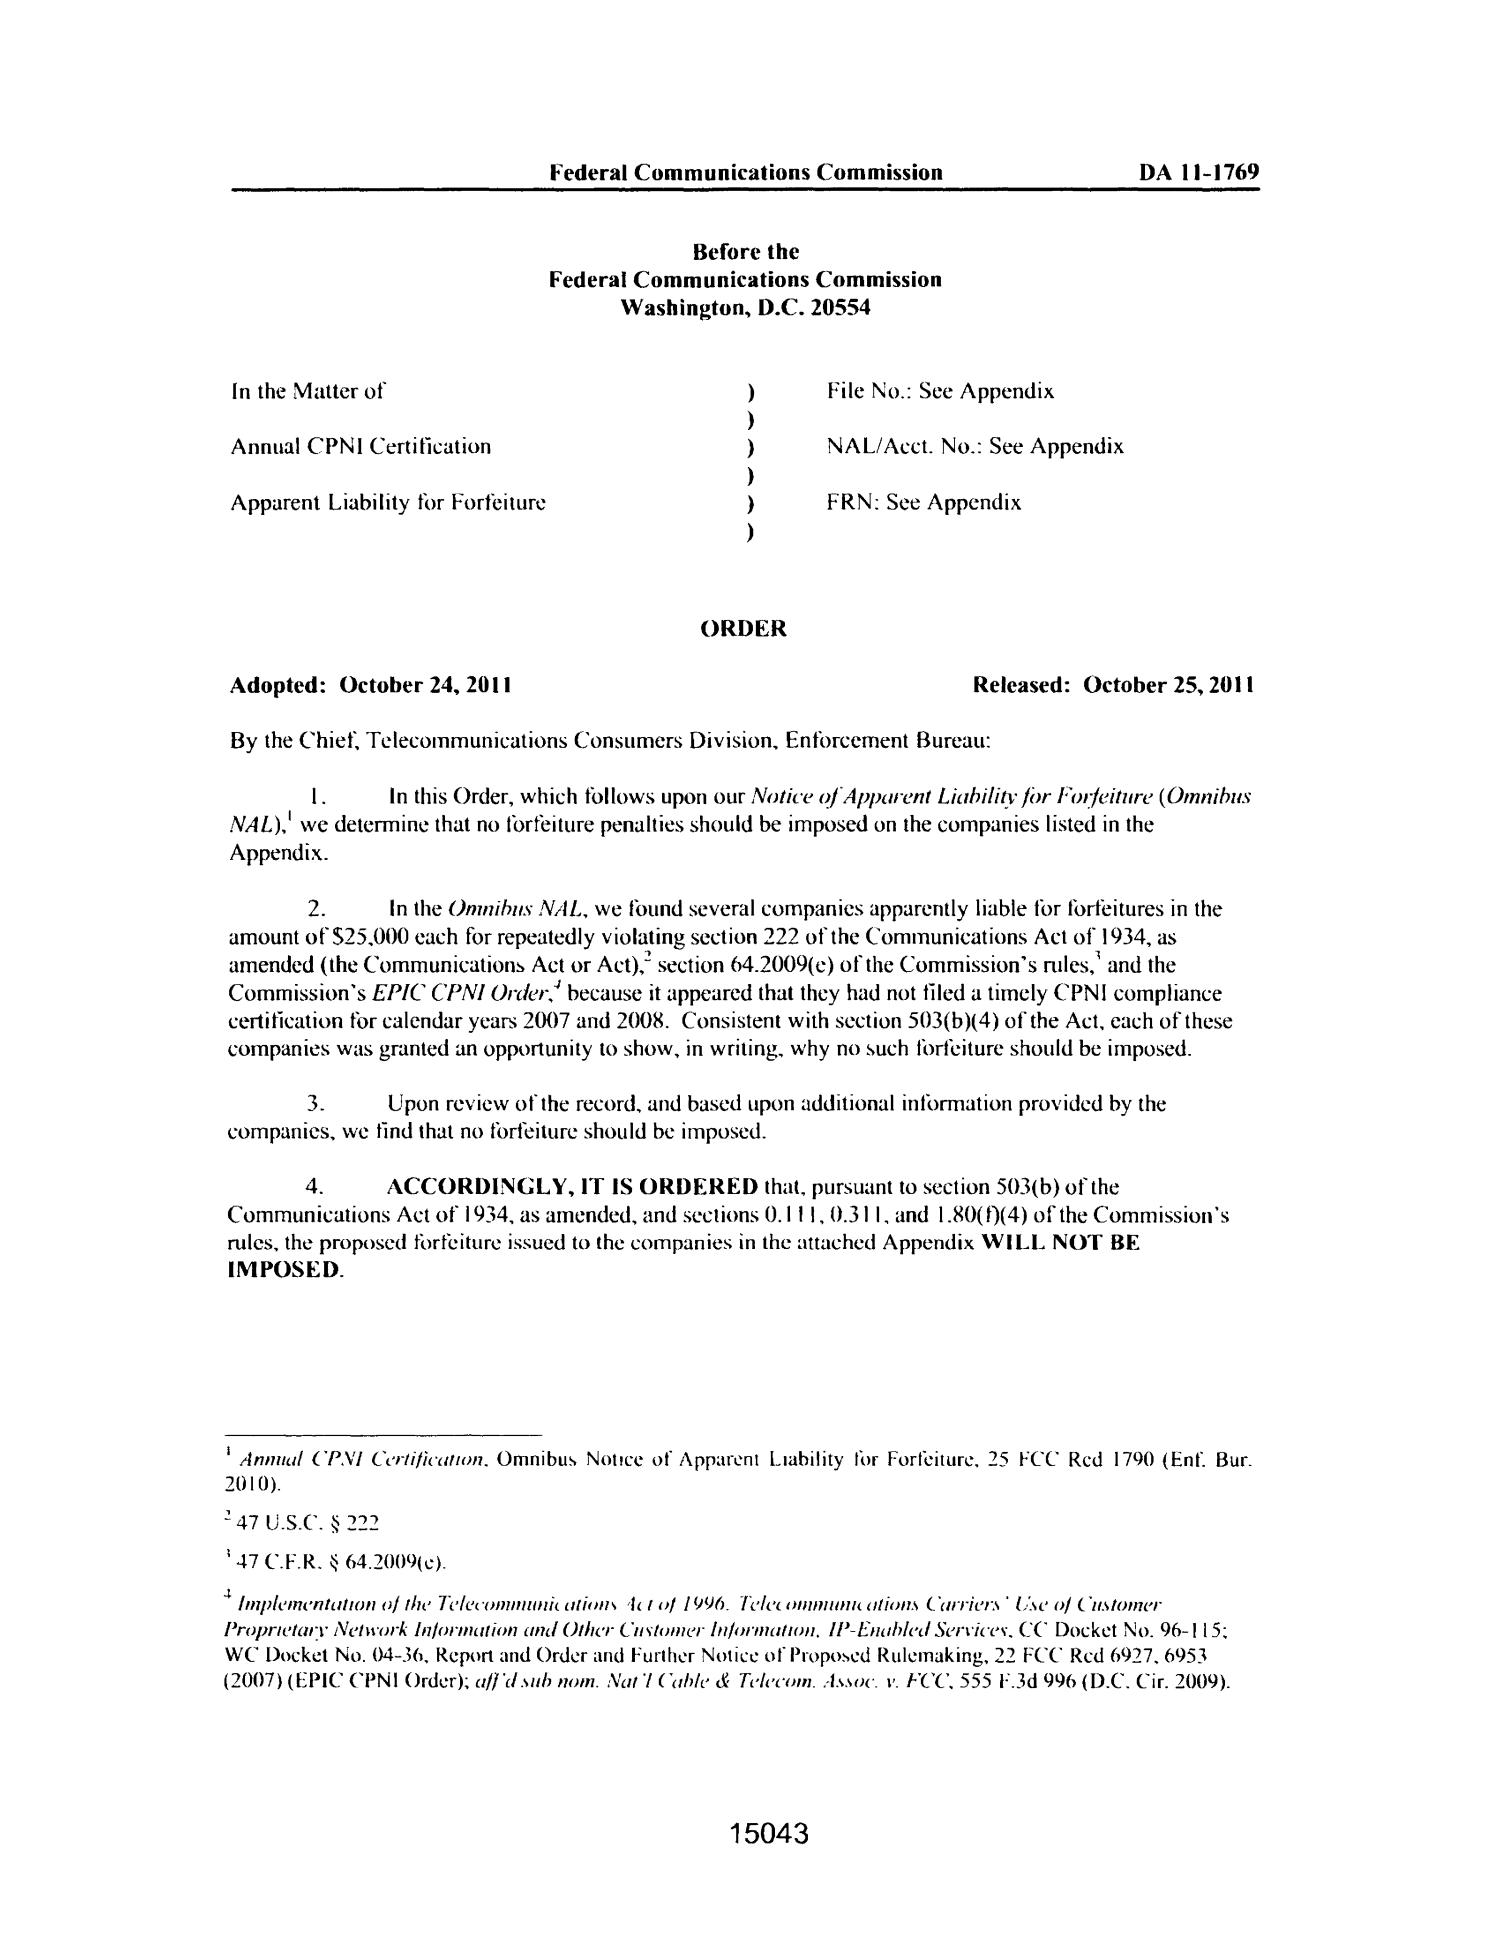 FCC Record, Volume 26, No. 19, Pages 14991 to 15893, October 24 - November 10, 2011                                                                                                      15043